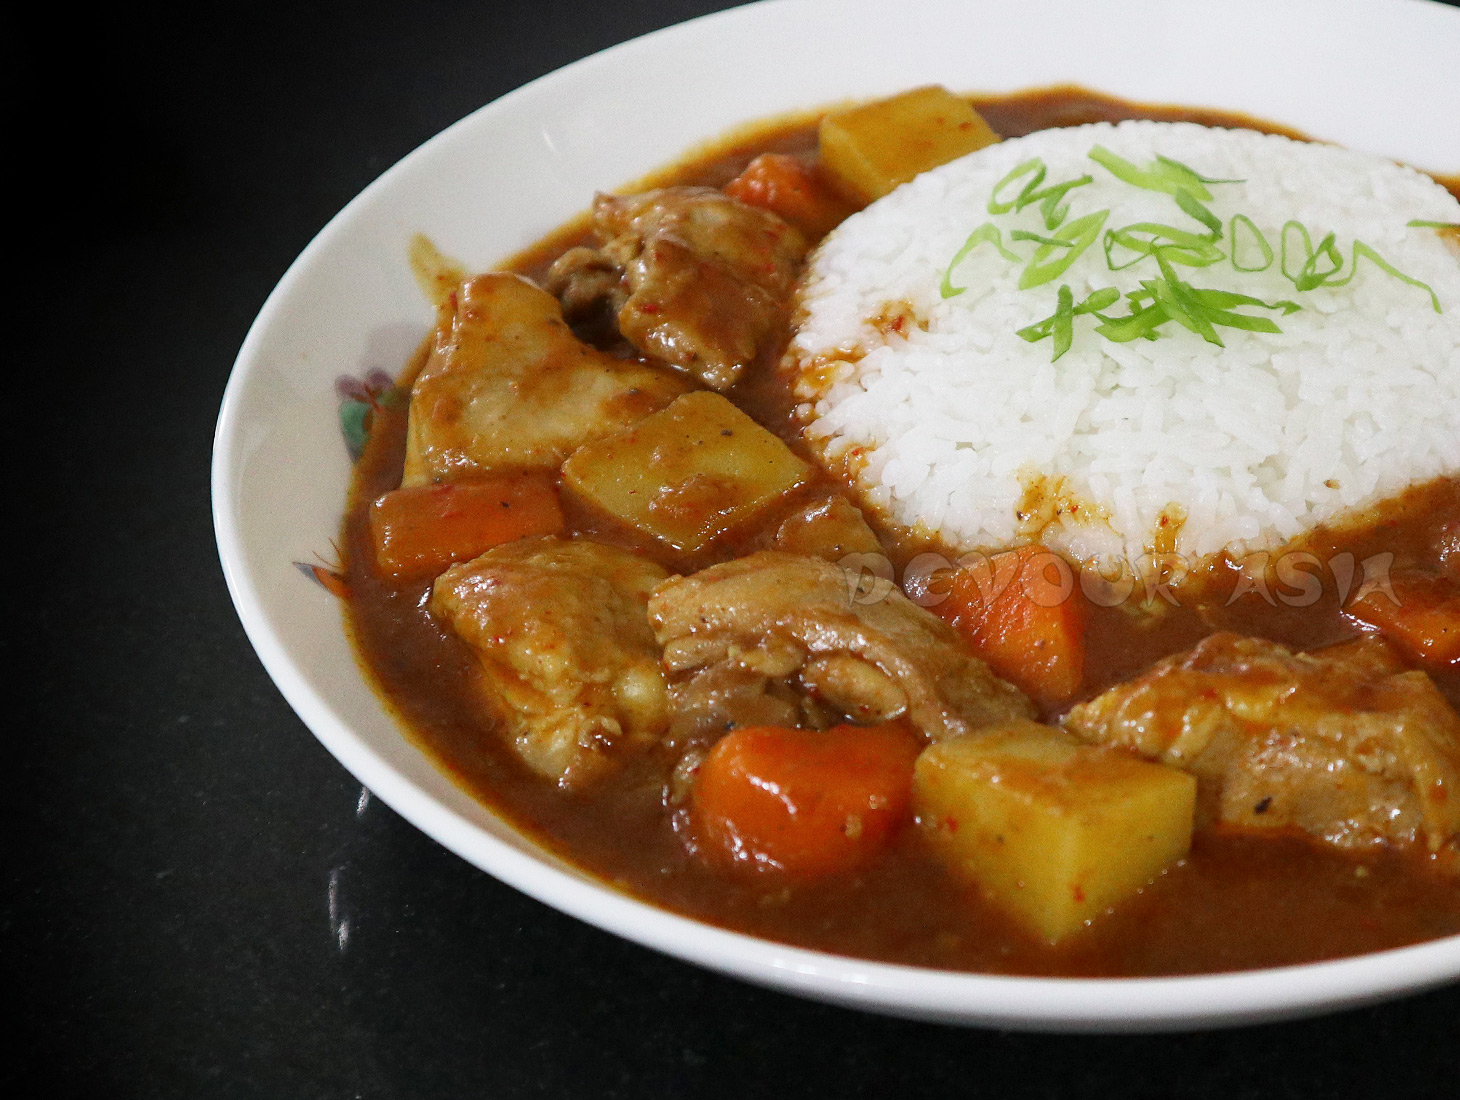 Japanese Chicken Curry with Rice in Bowl